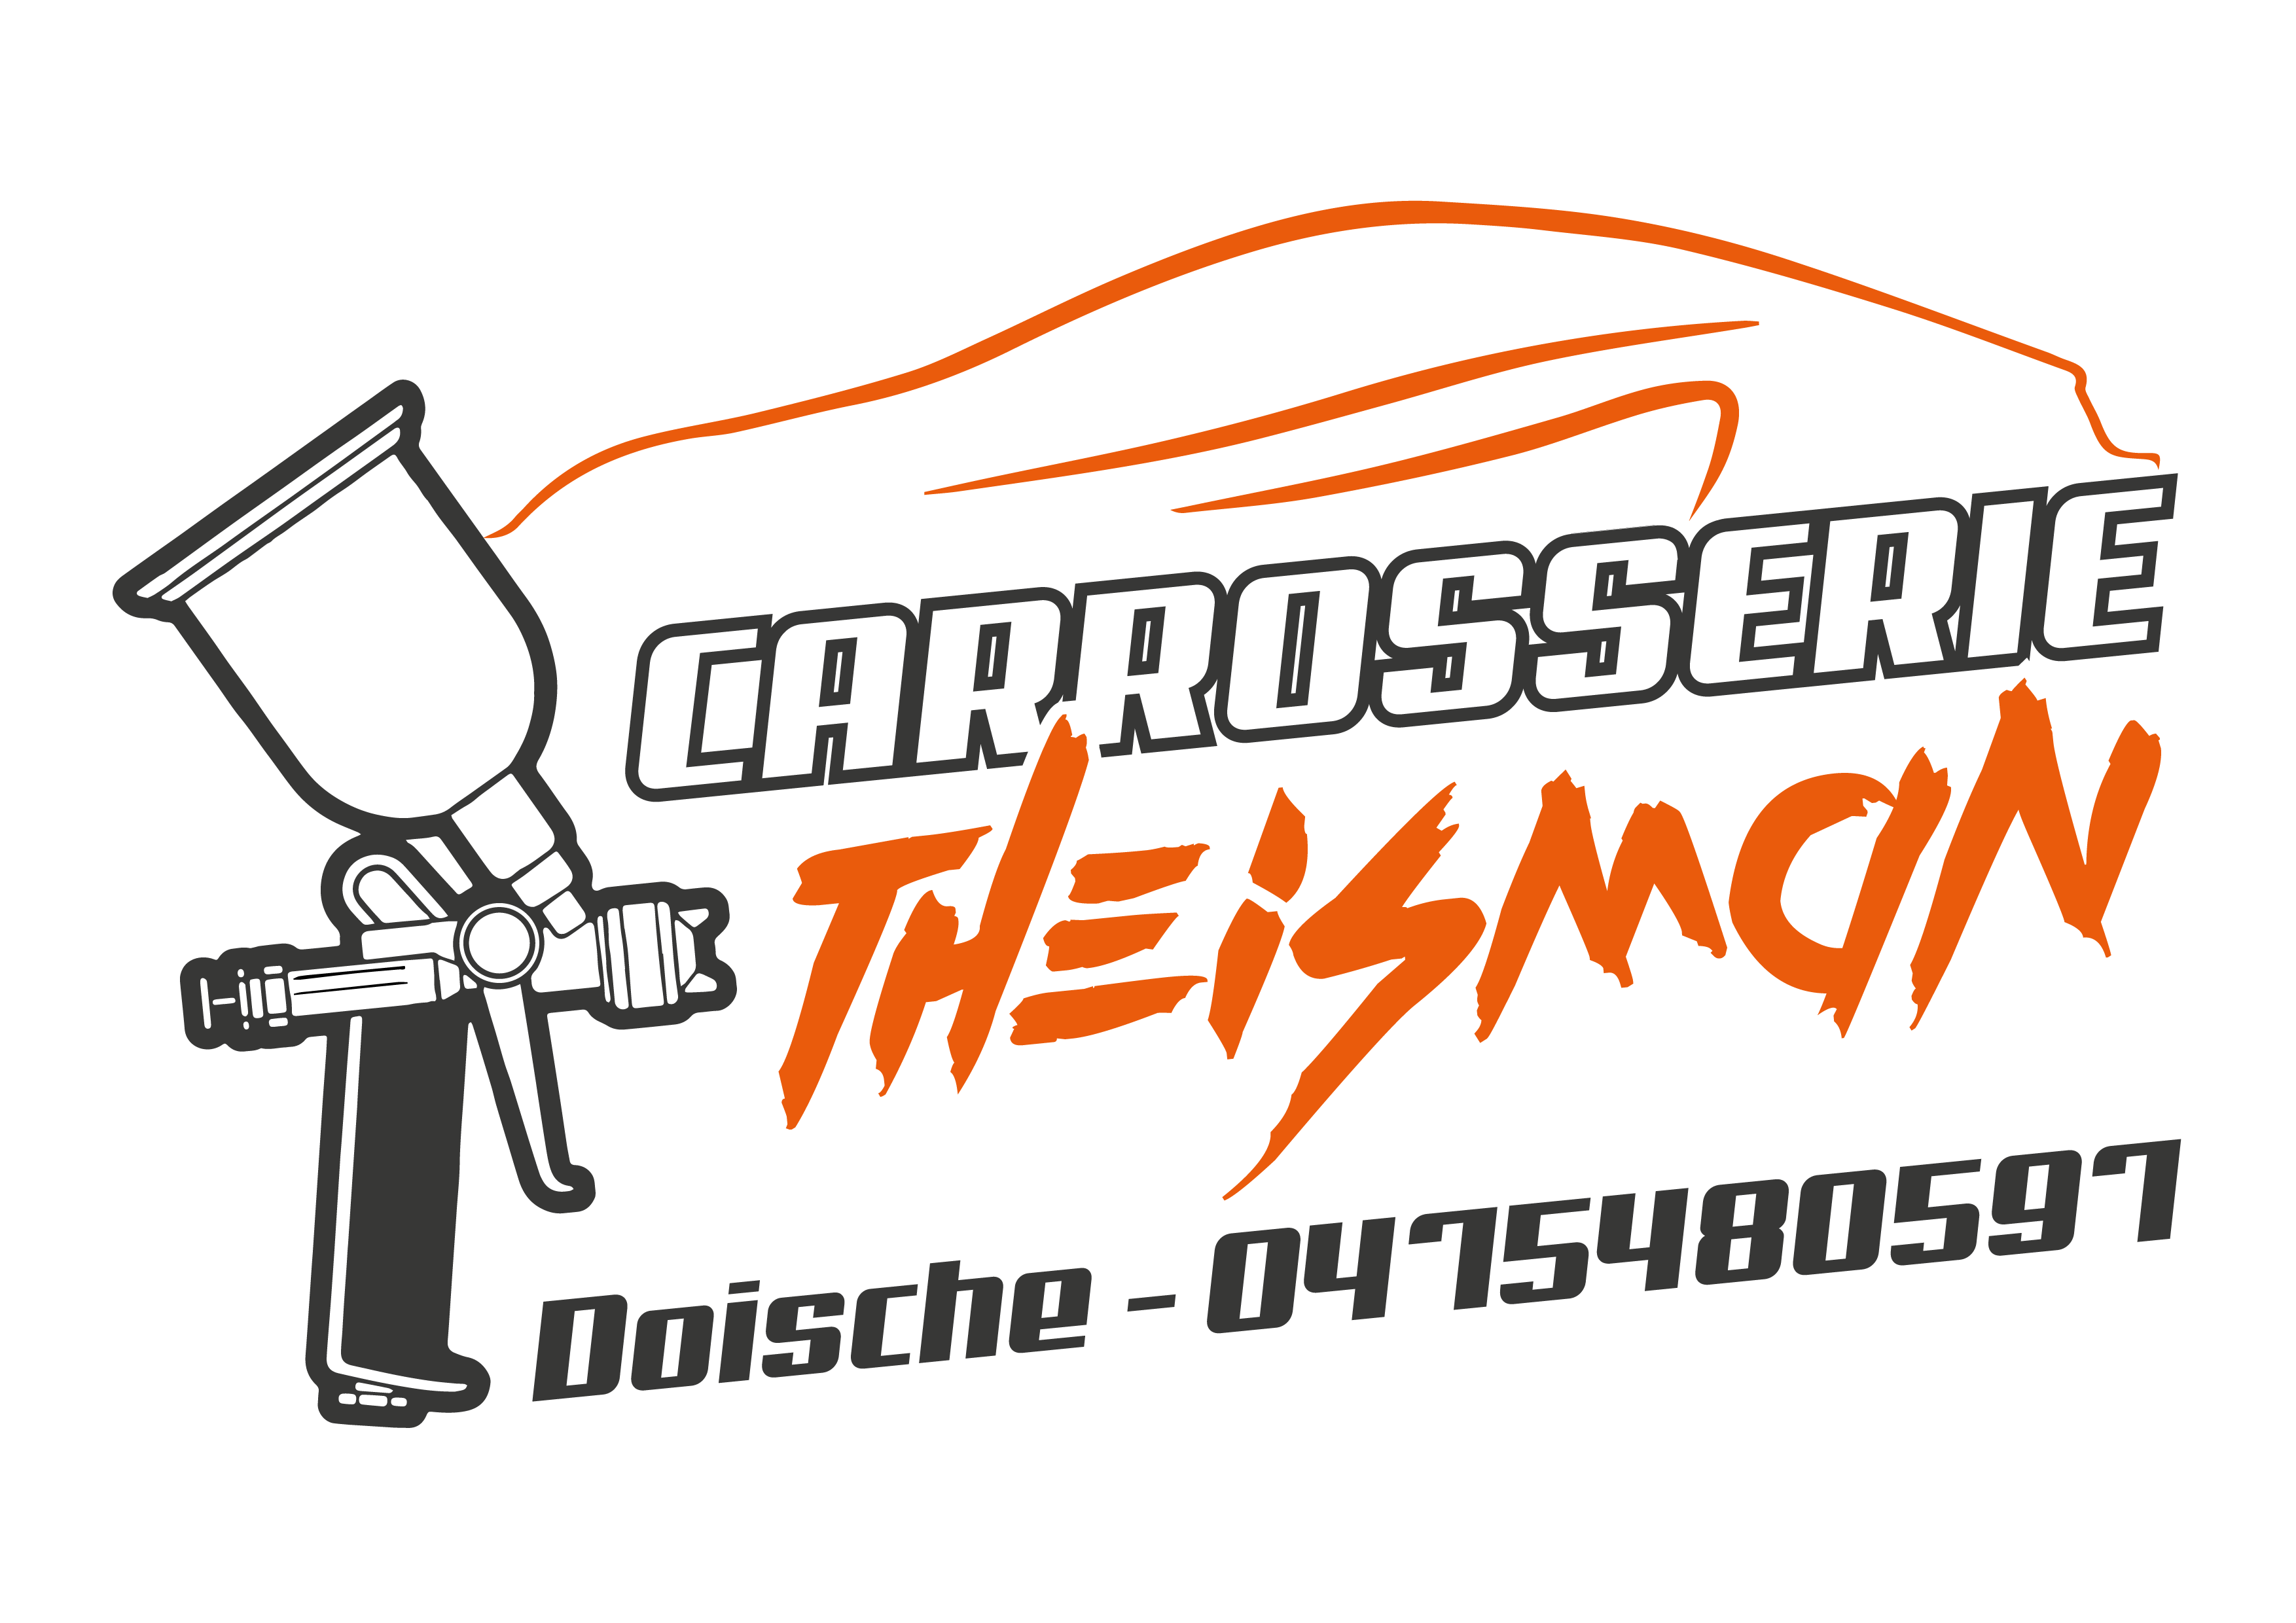 Carrosserie Theisman